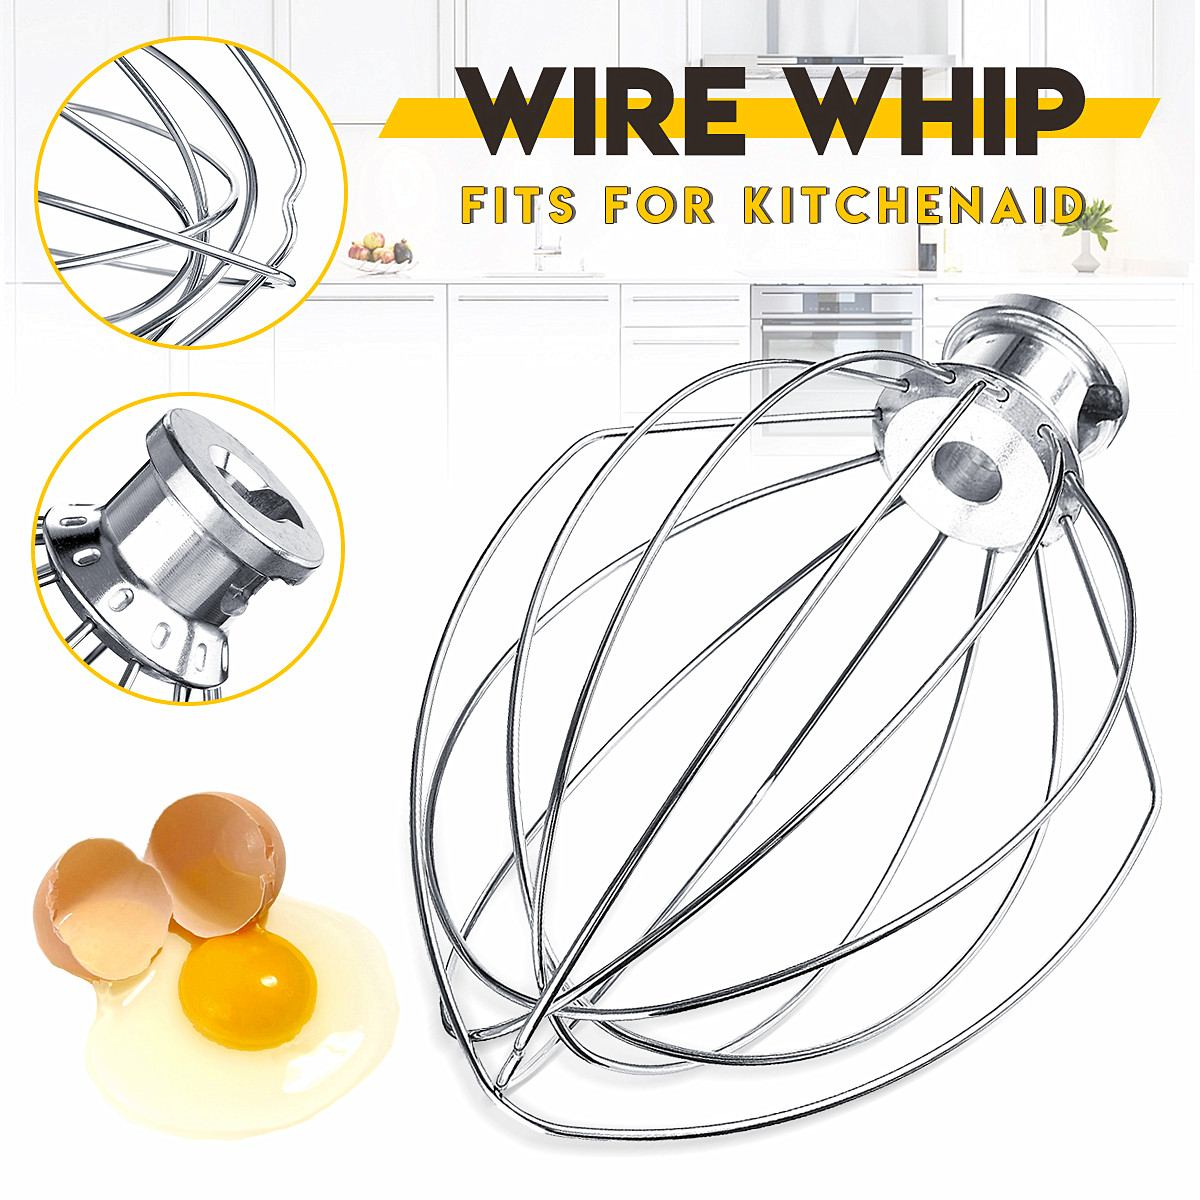 6 Wire Whip Whisk Egg Beater Cream Mixer Stainless steel Attachment For K5AWW Stand Mixers Milkshake 6-Wire Whip Whisk Egg Beater Cream Mixer Stainless steel Attachment For K5AWW Stand Mixers Milkshake Noodle Maker